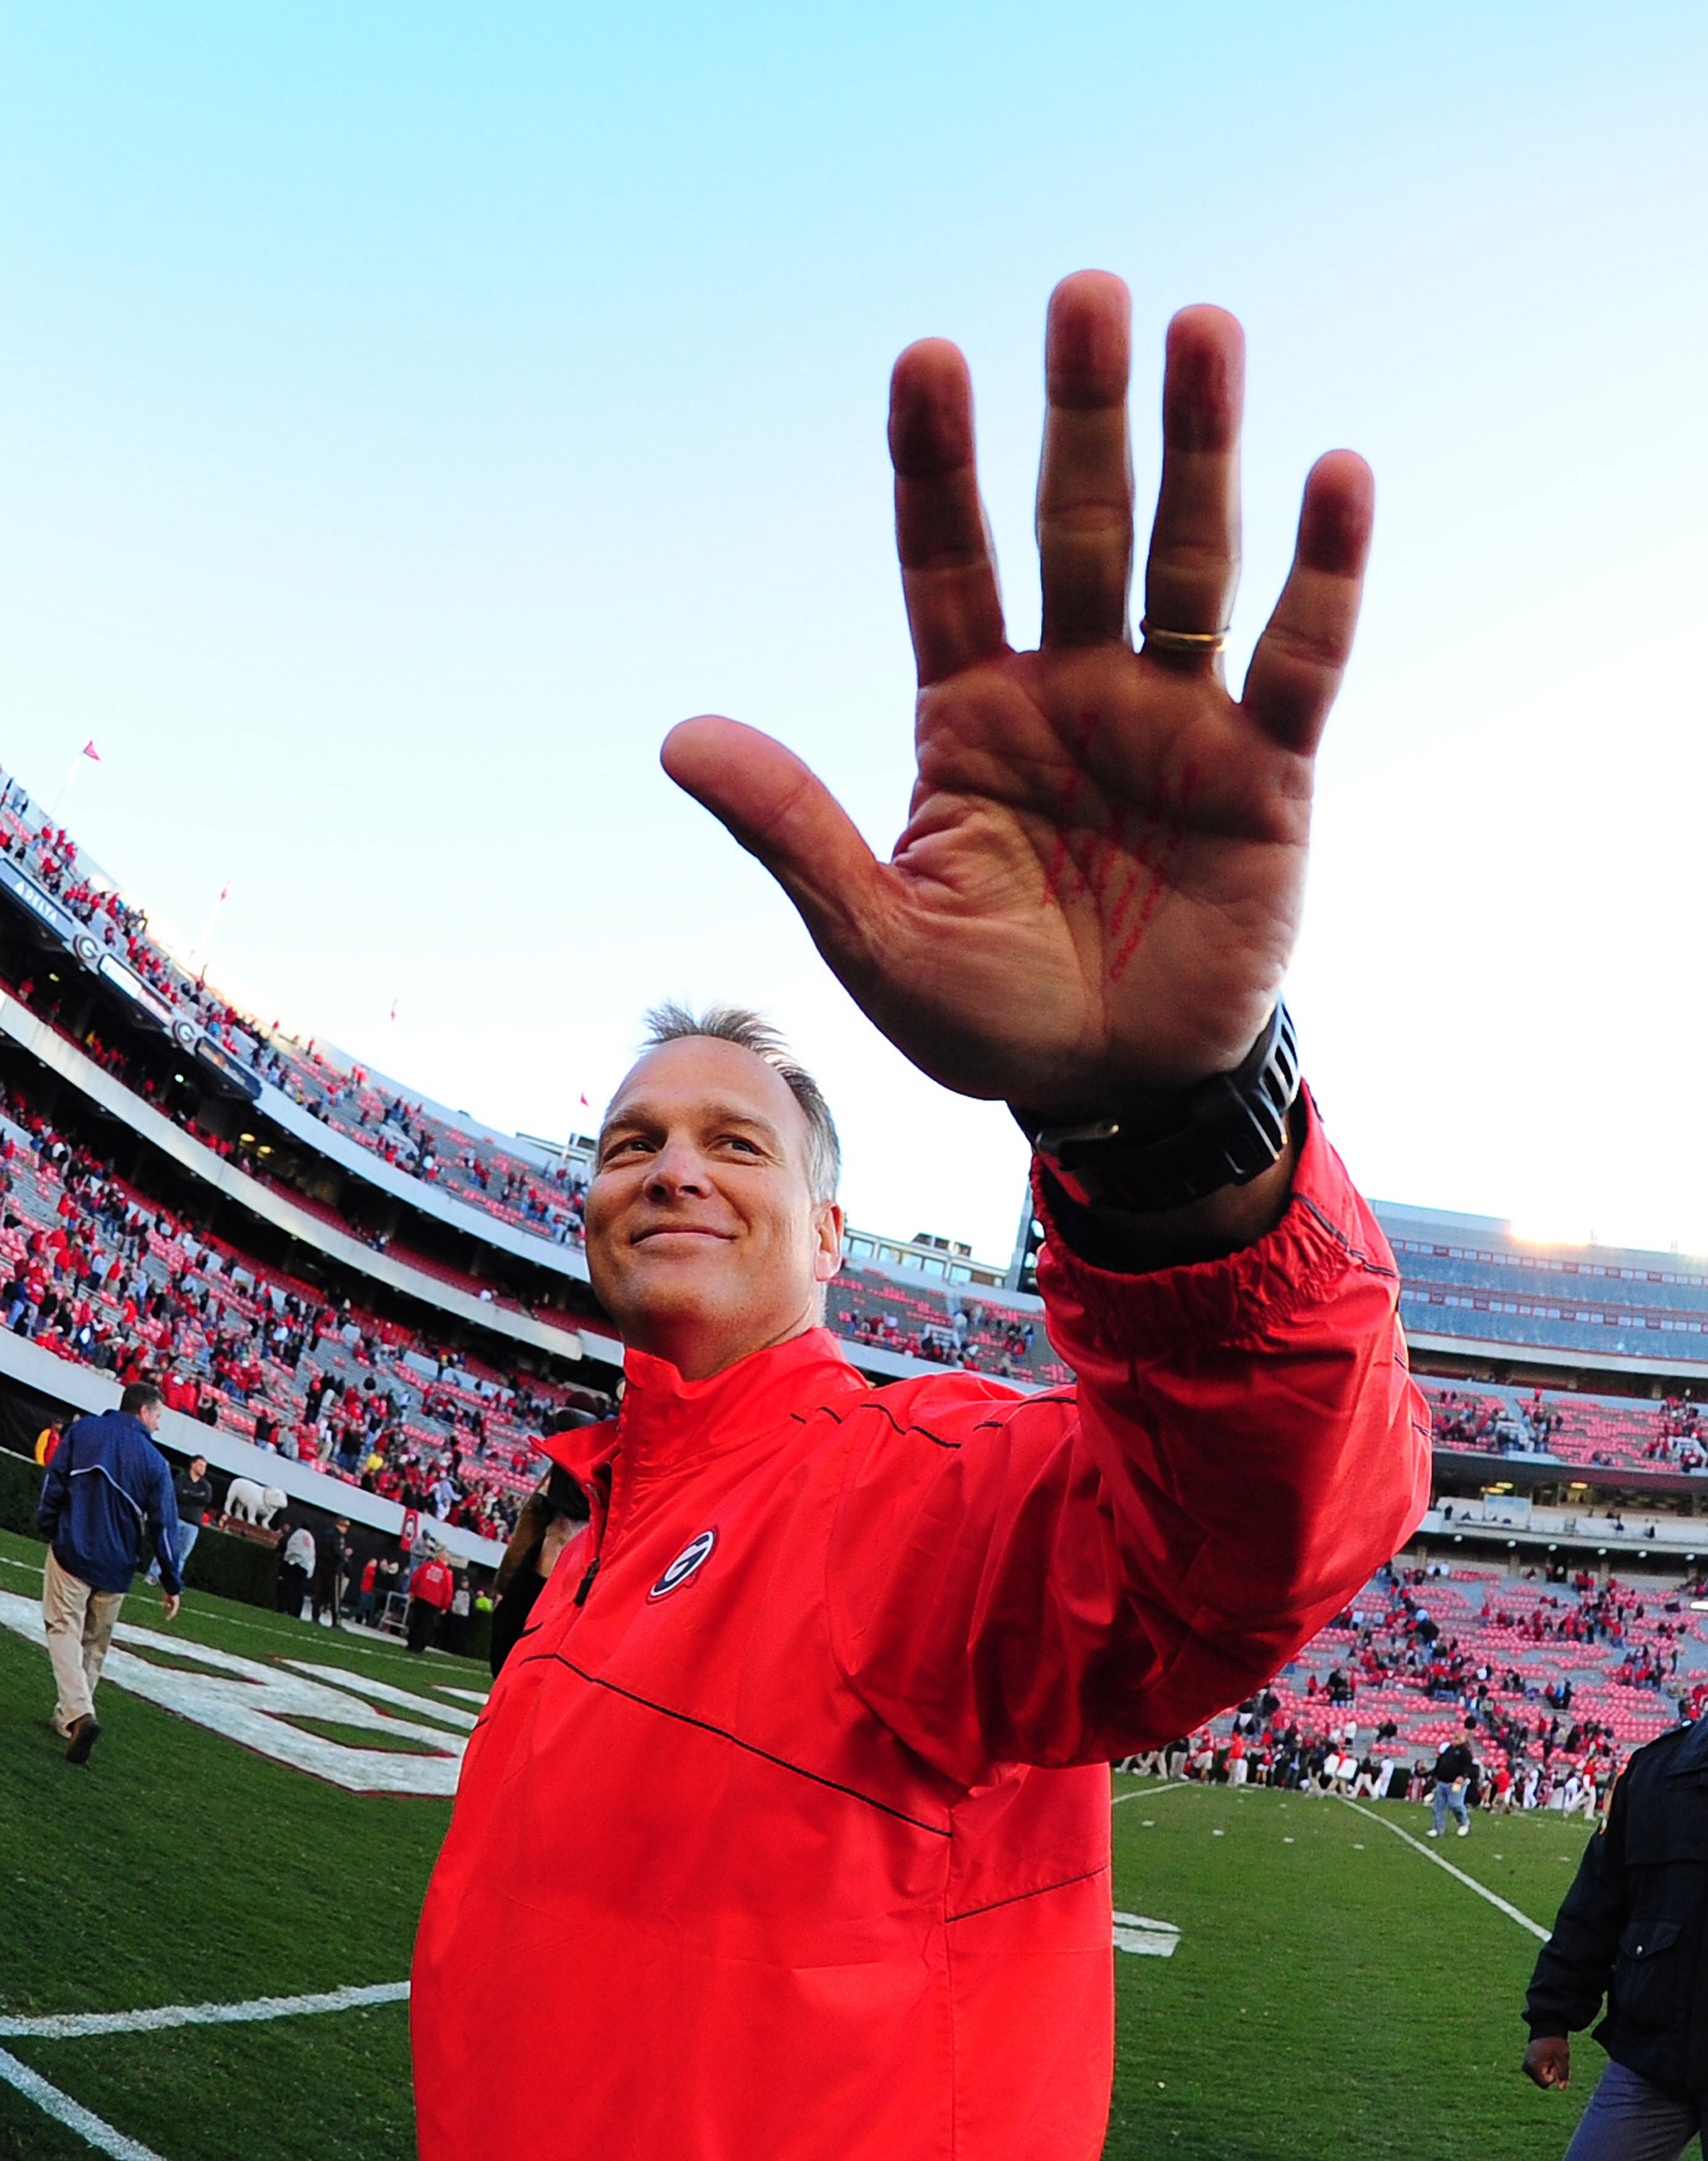 Georgia's Mark Richt is a win away from playing Notre Dame for the national championship in Miami. (Getty Images)